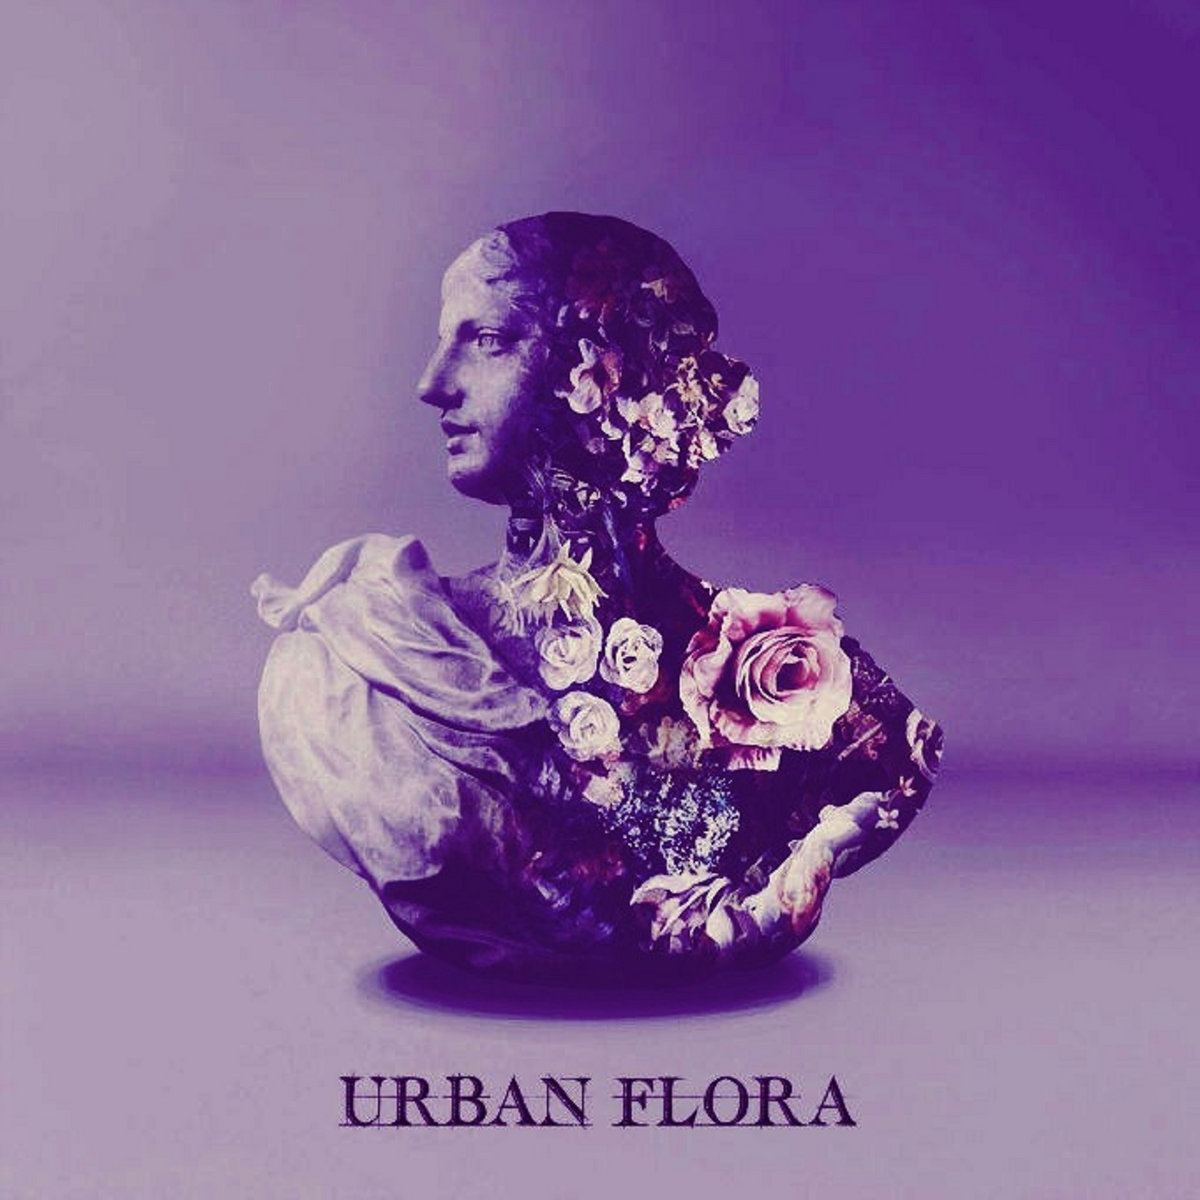 alina baraz urban flora full album download